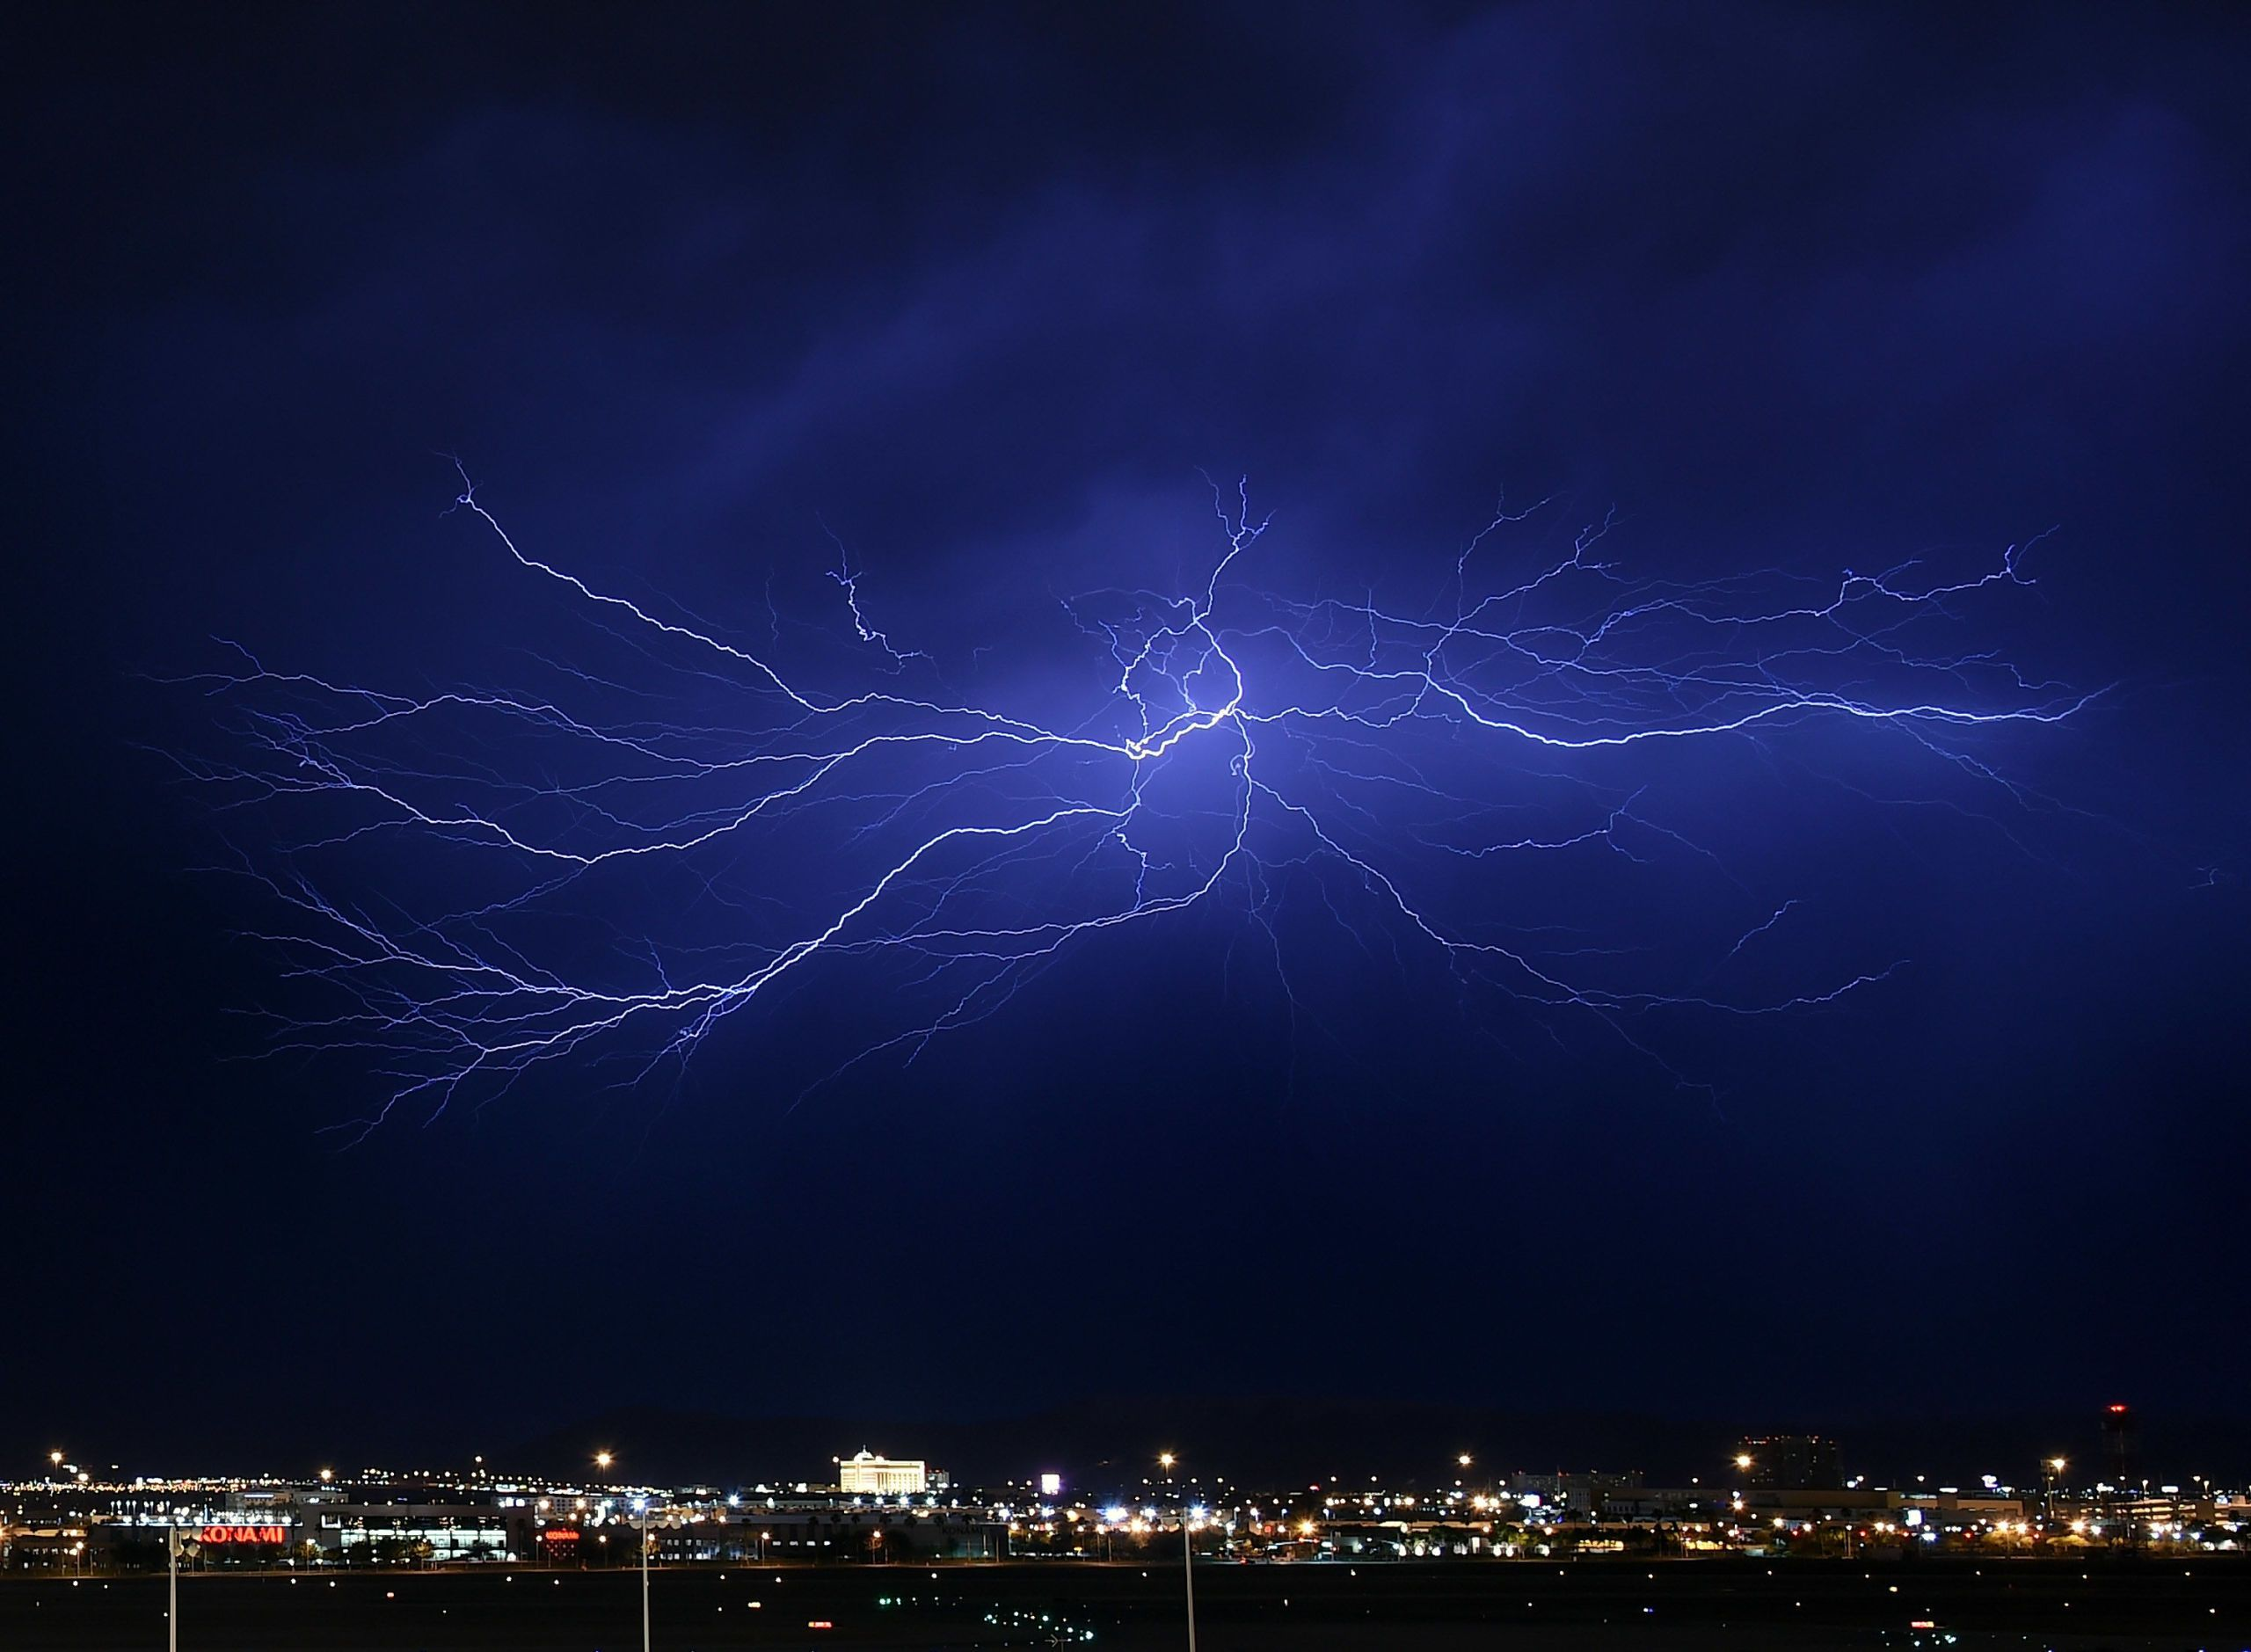 Get Much Smarter About Electricity in 231 Seconds